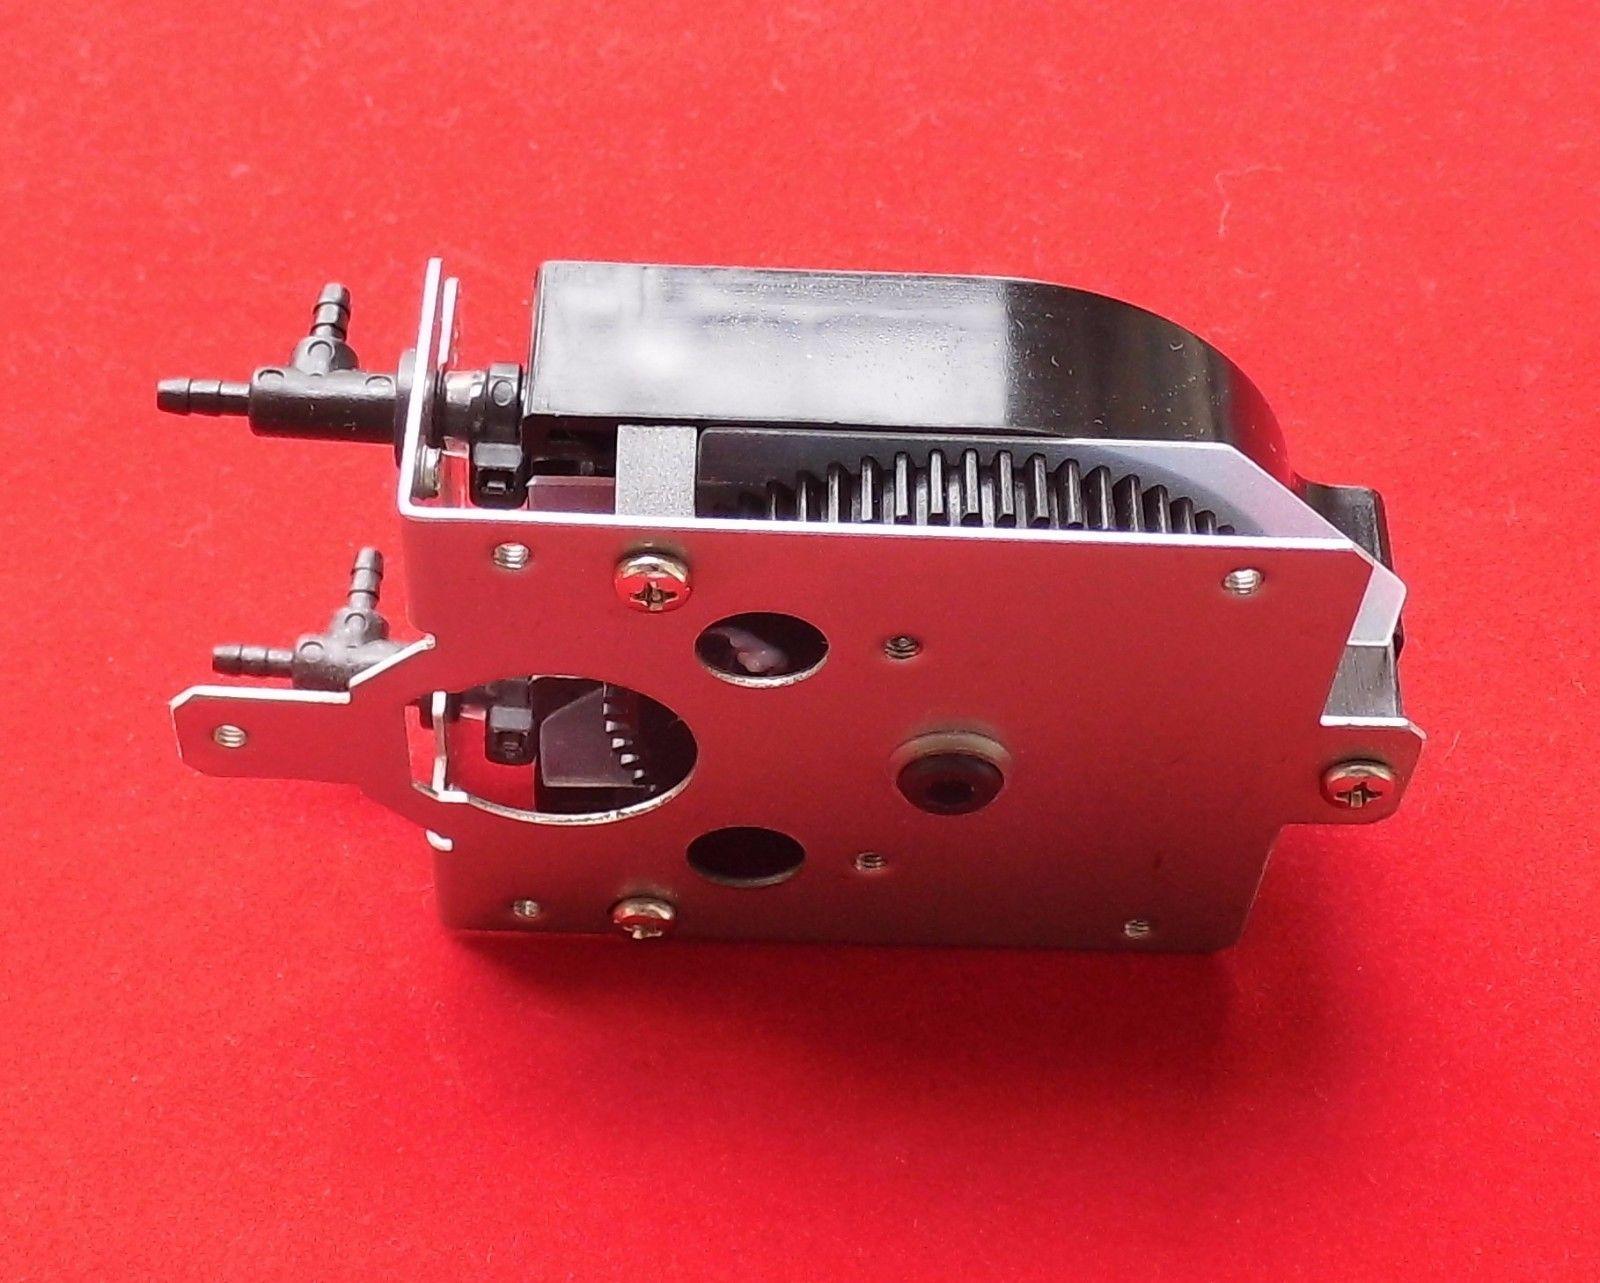 U type ink pump assy for Roland VP-300 VP-540 VP300I VP540I XJ-740 XJ-640 XJ-540